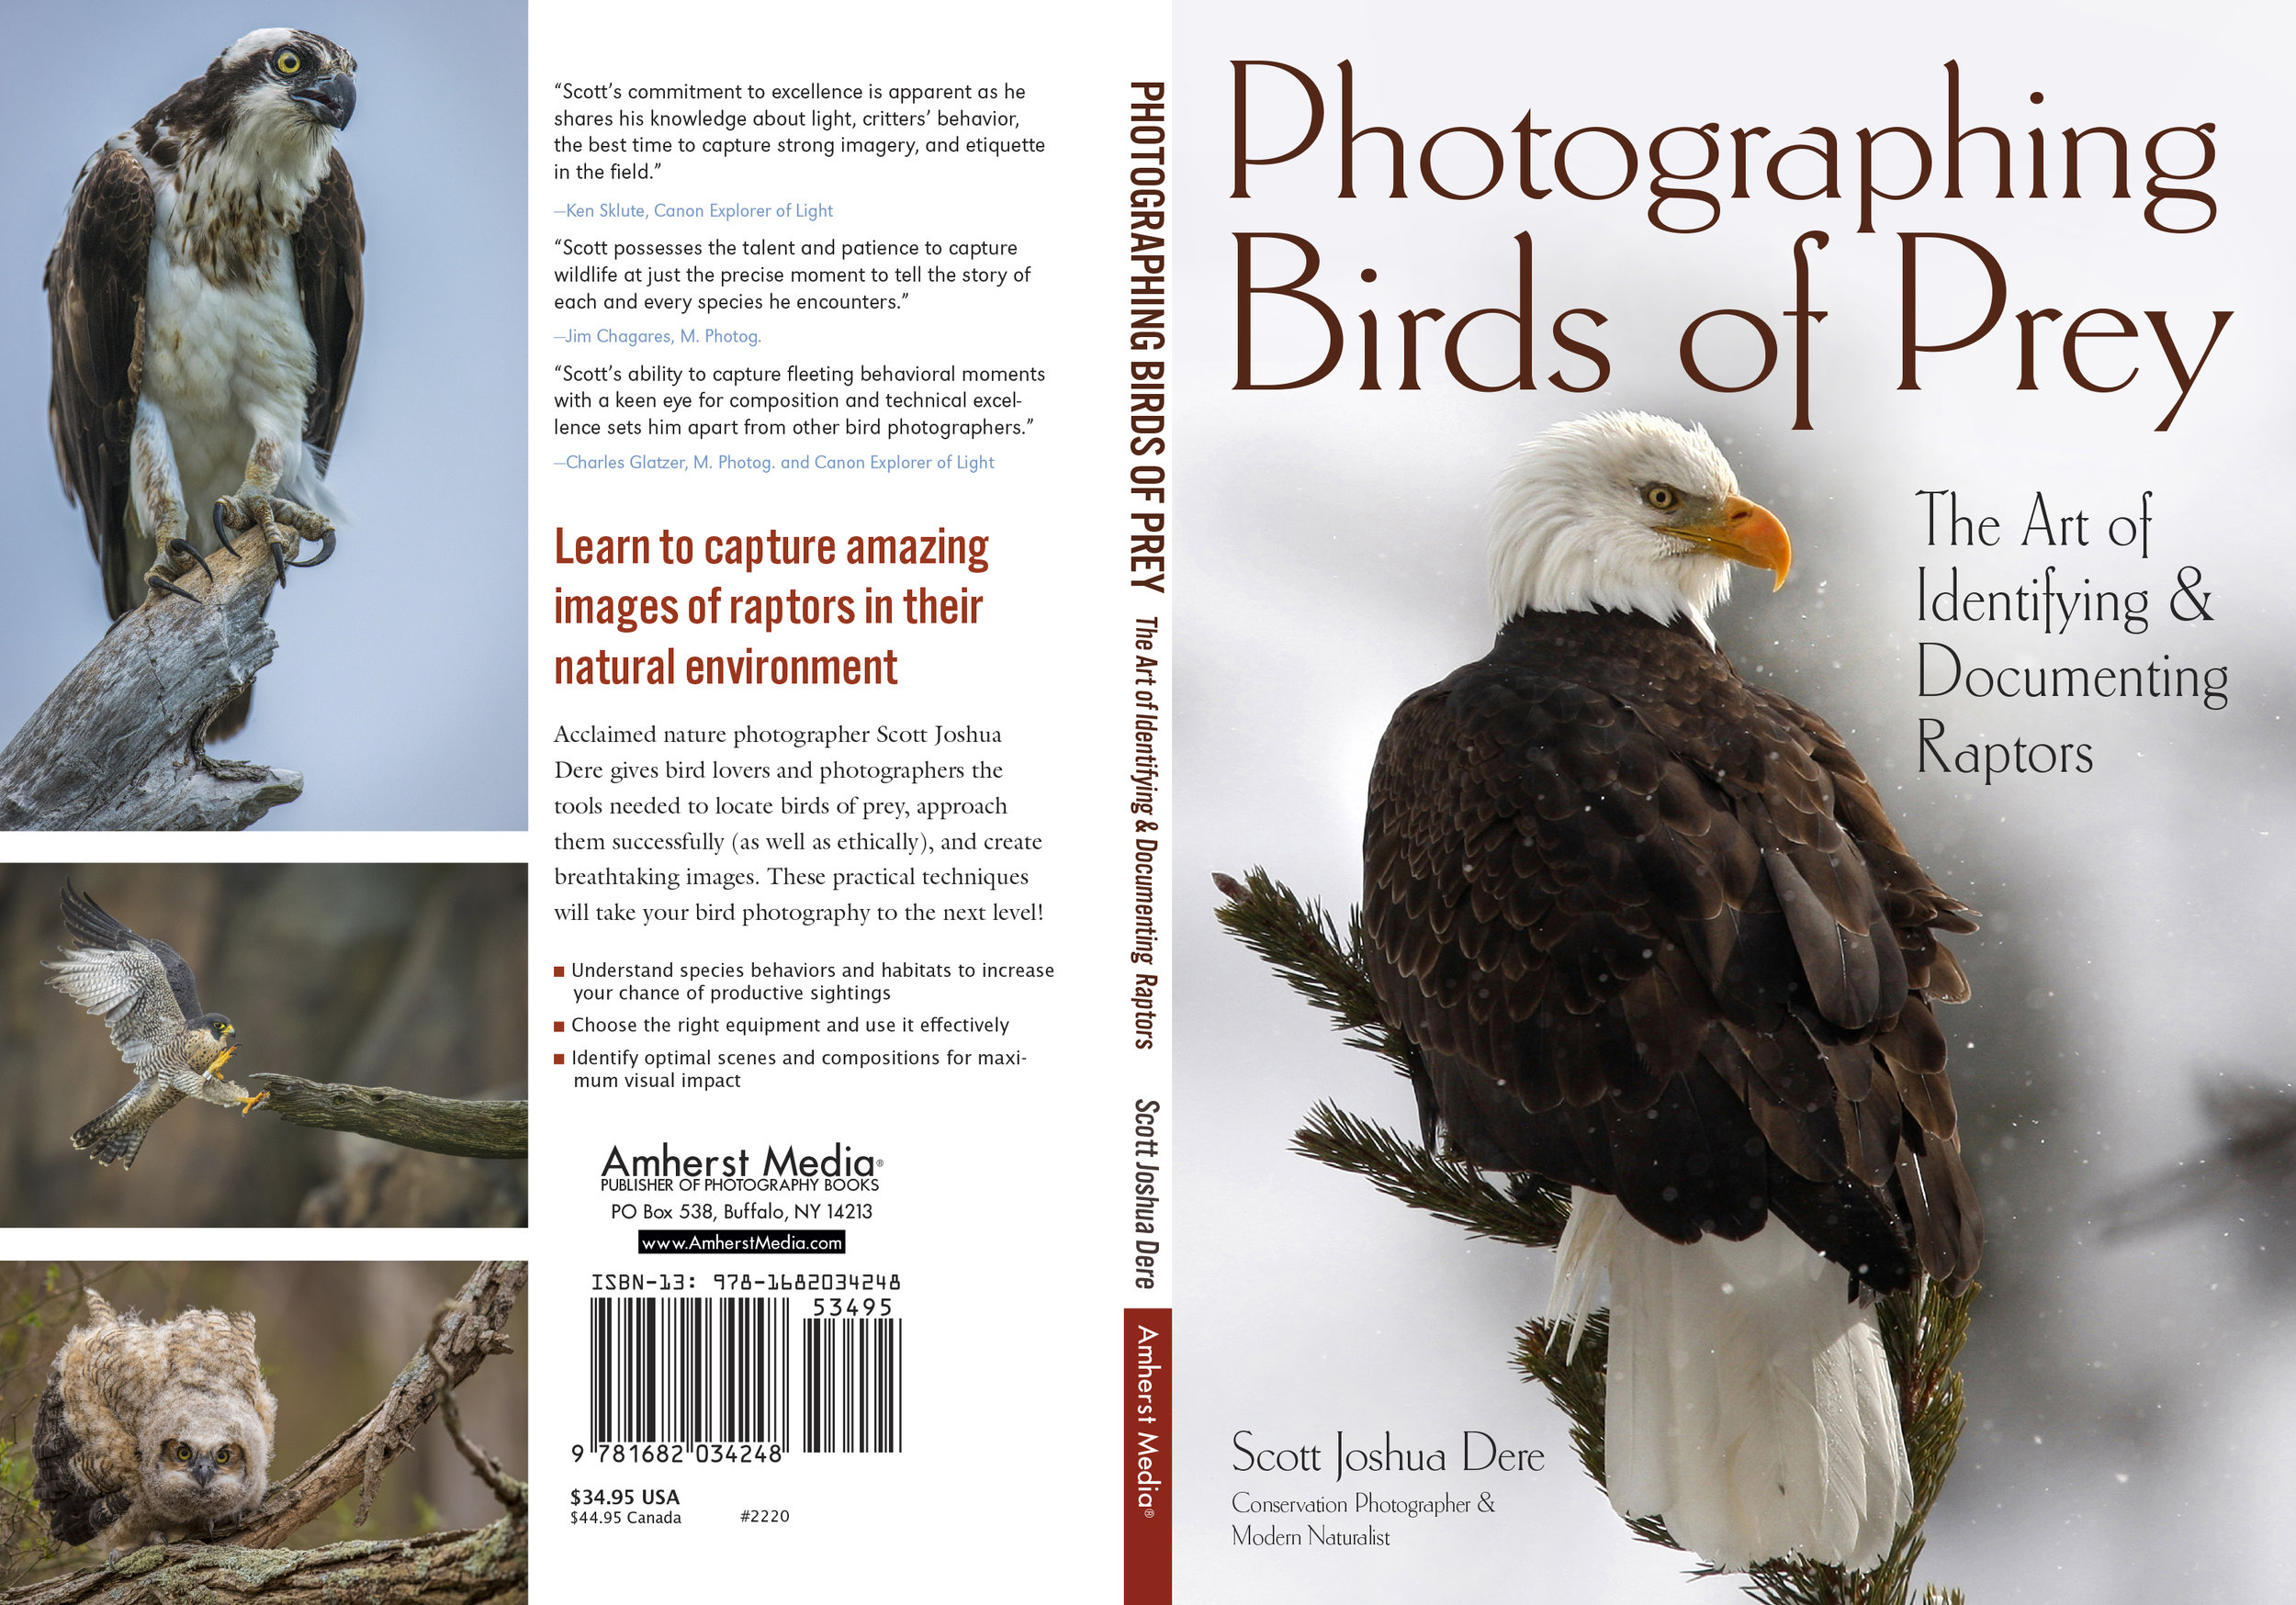 Books - Photographing Birds of Prey